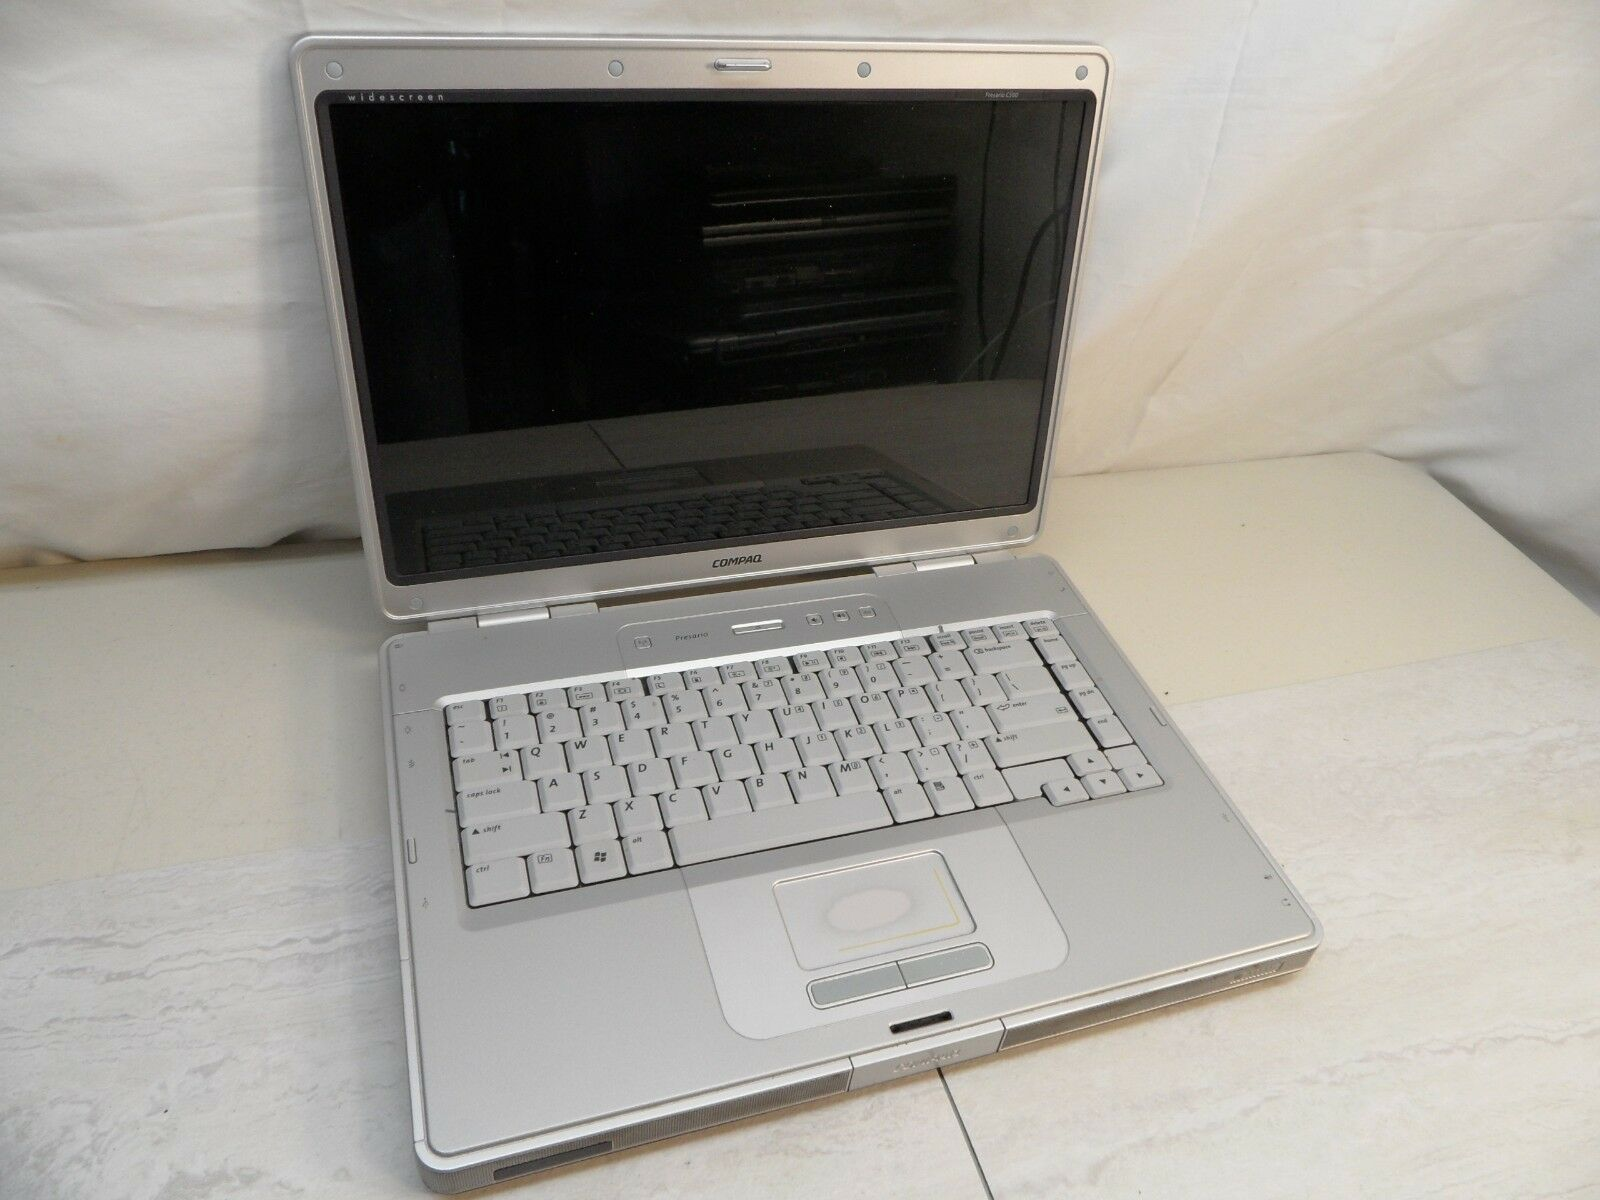 Compaq Presario C500 C552US Parts Laptop 1.6Ghz No Hard Drive Posted To Bios